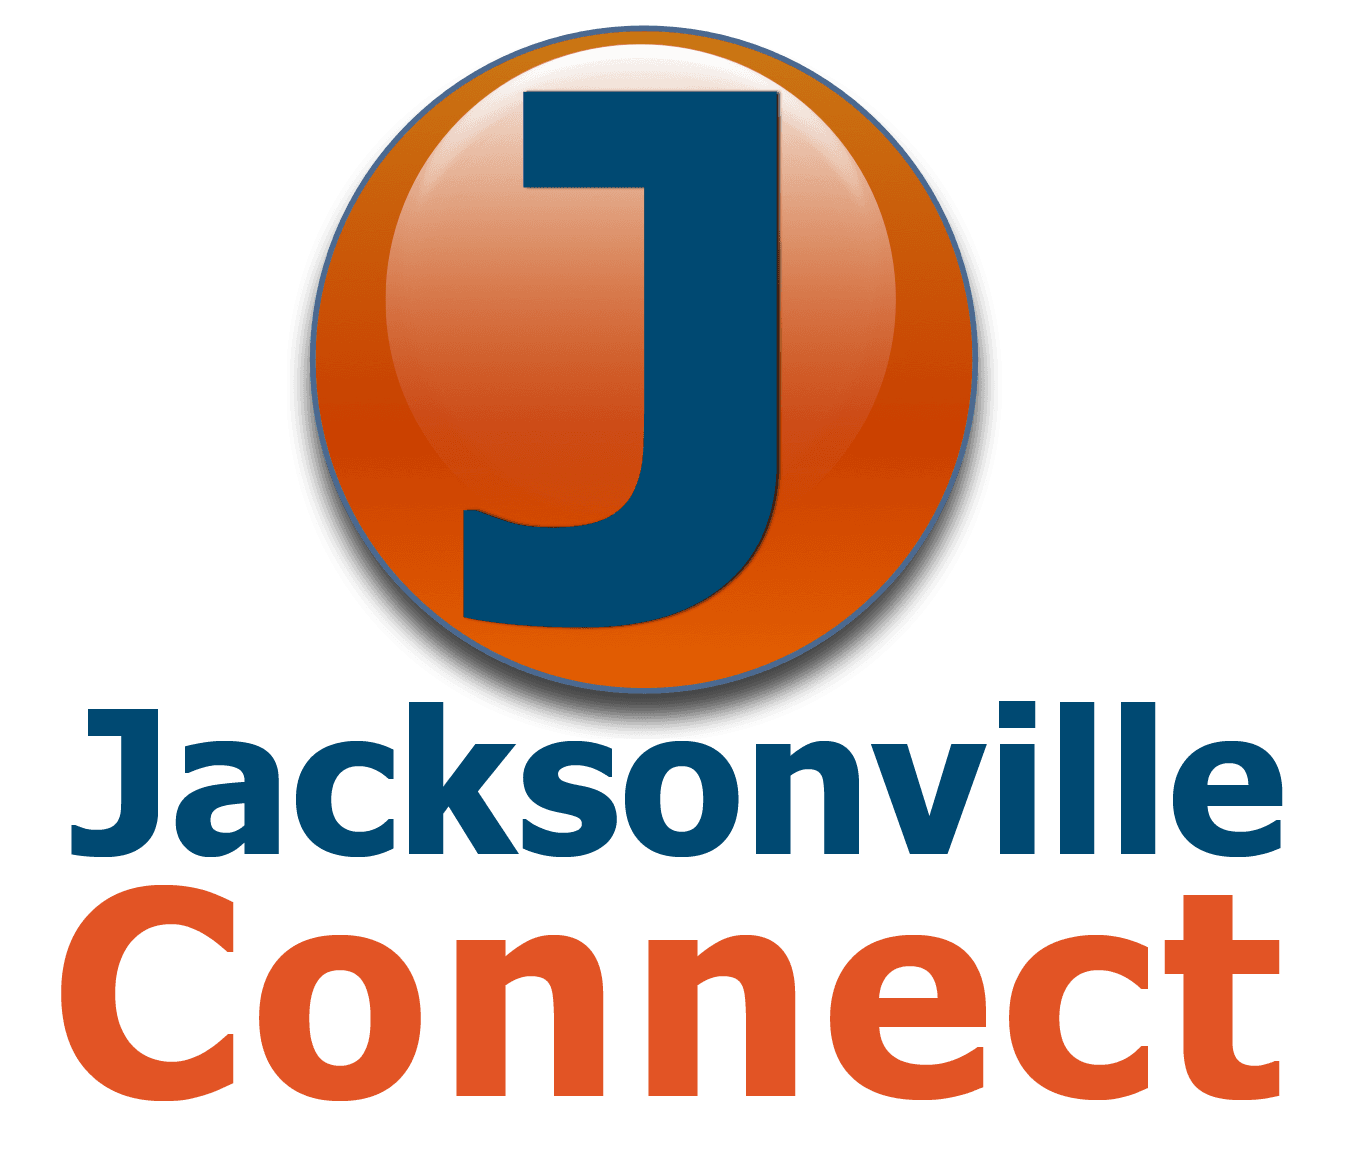 Jacksonville Connect